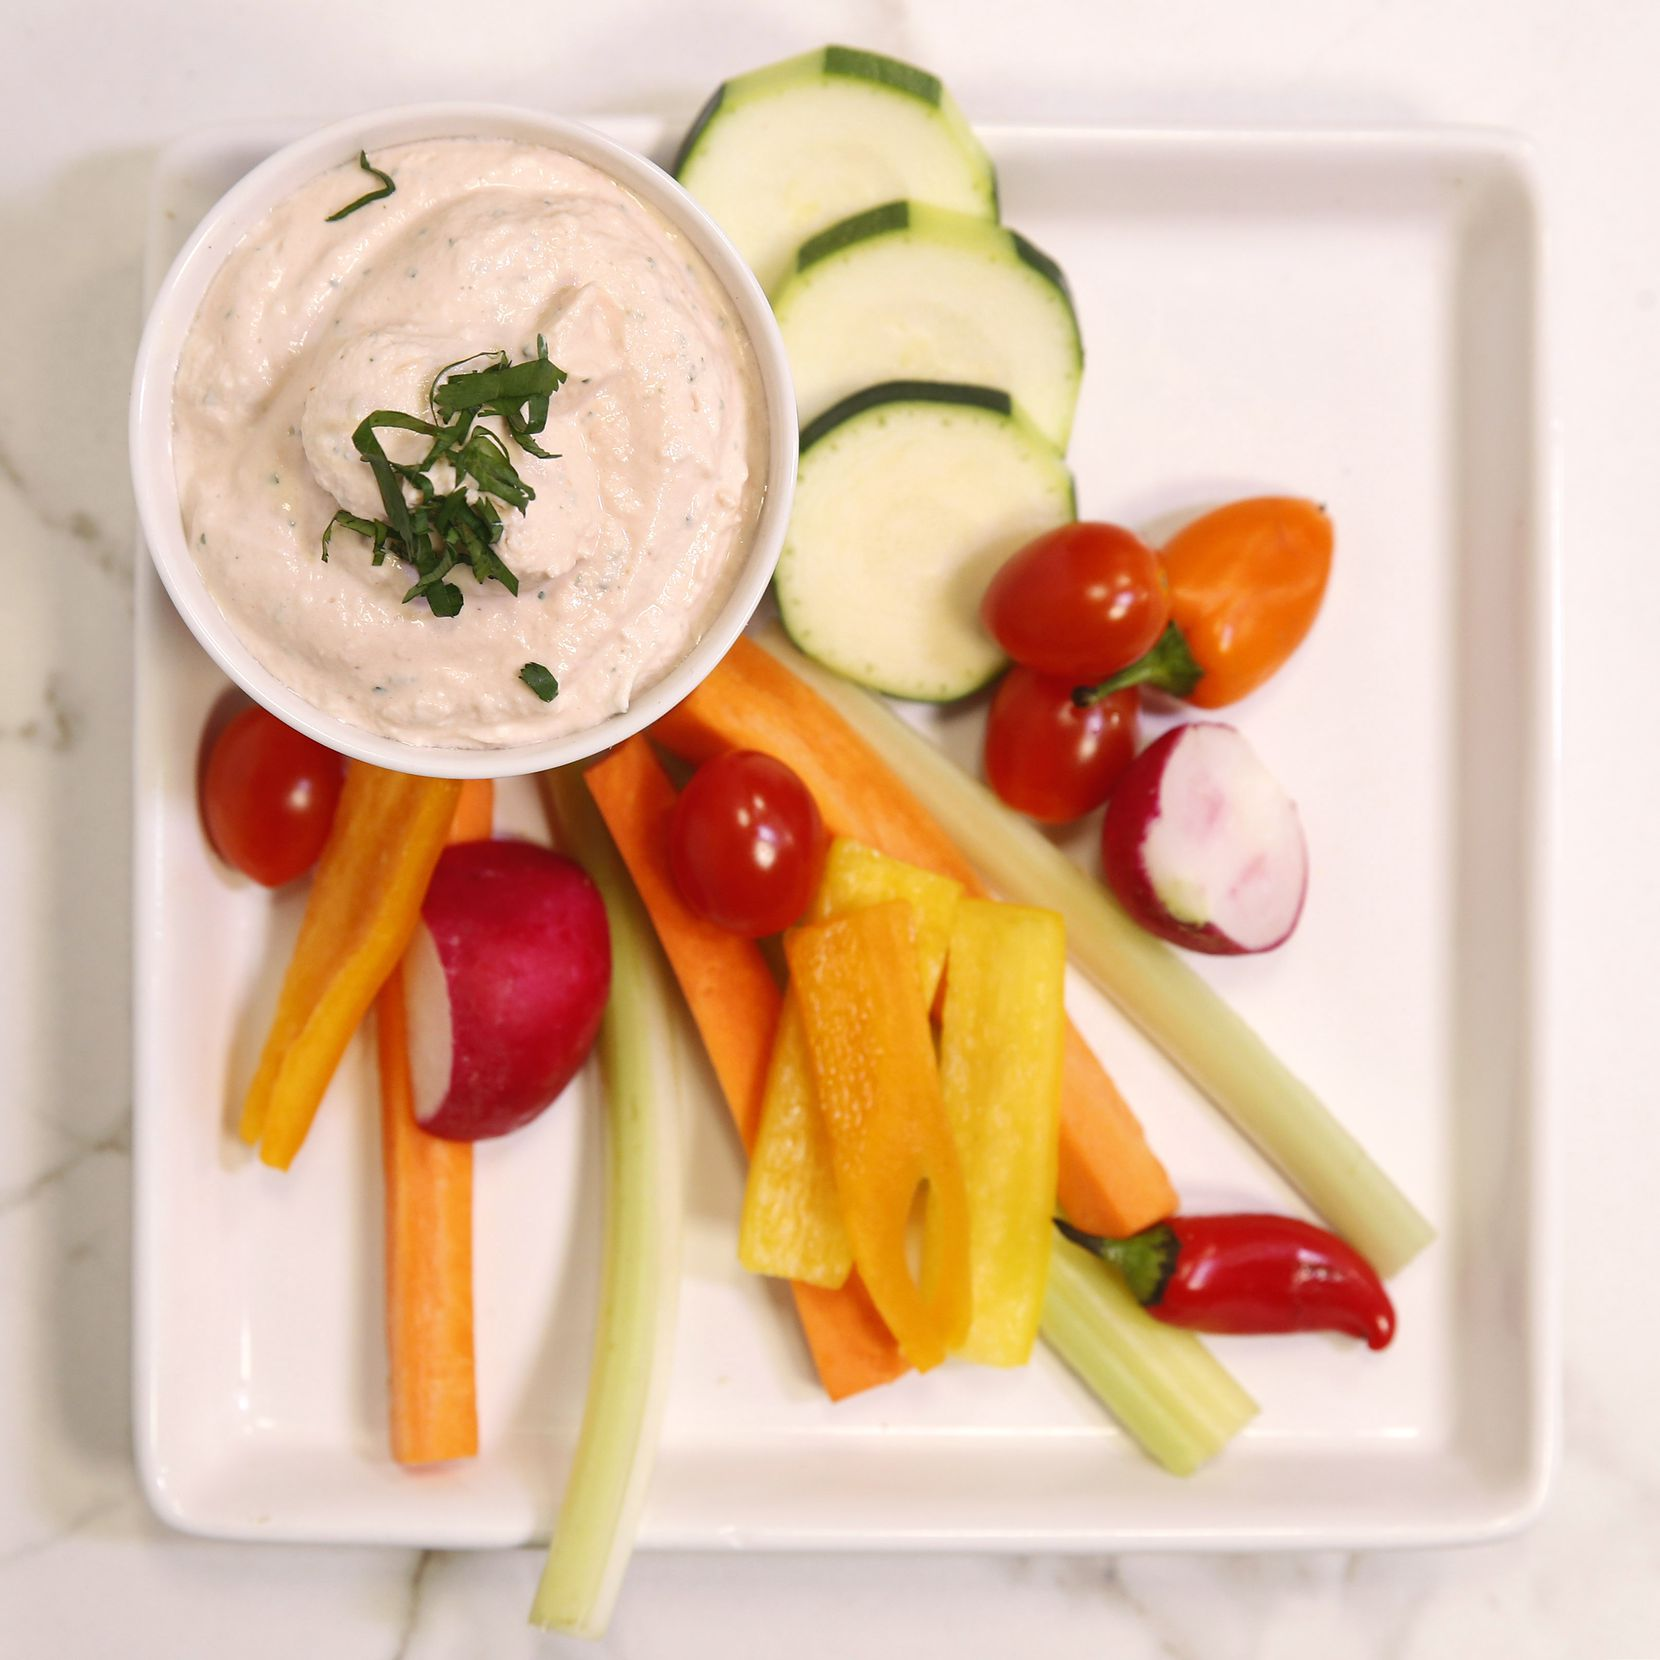 Love Dip is cream cheese-based with tarragon.